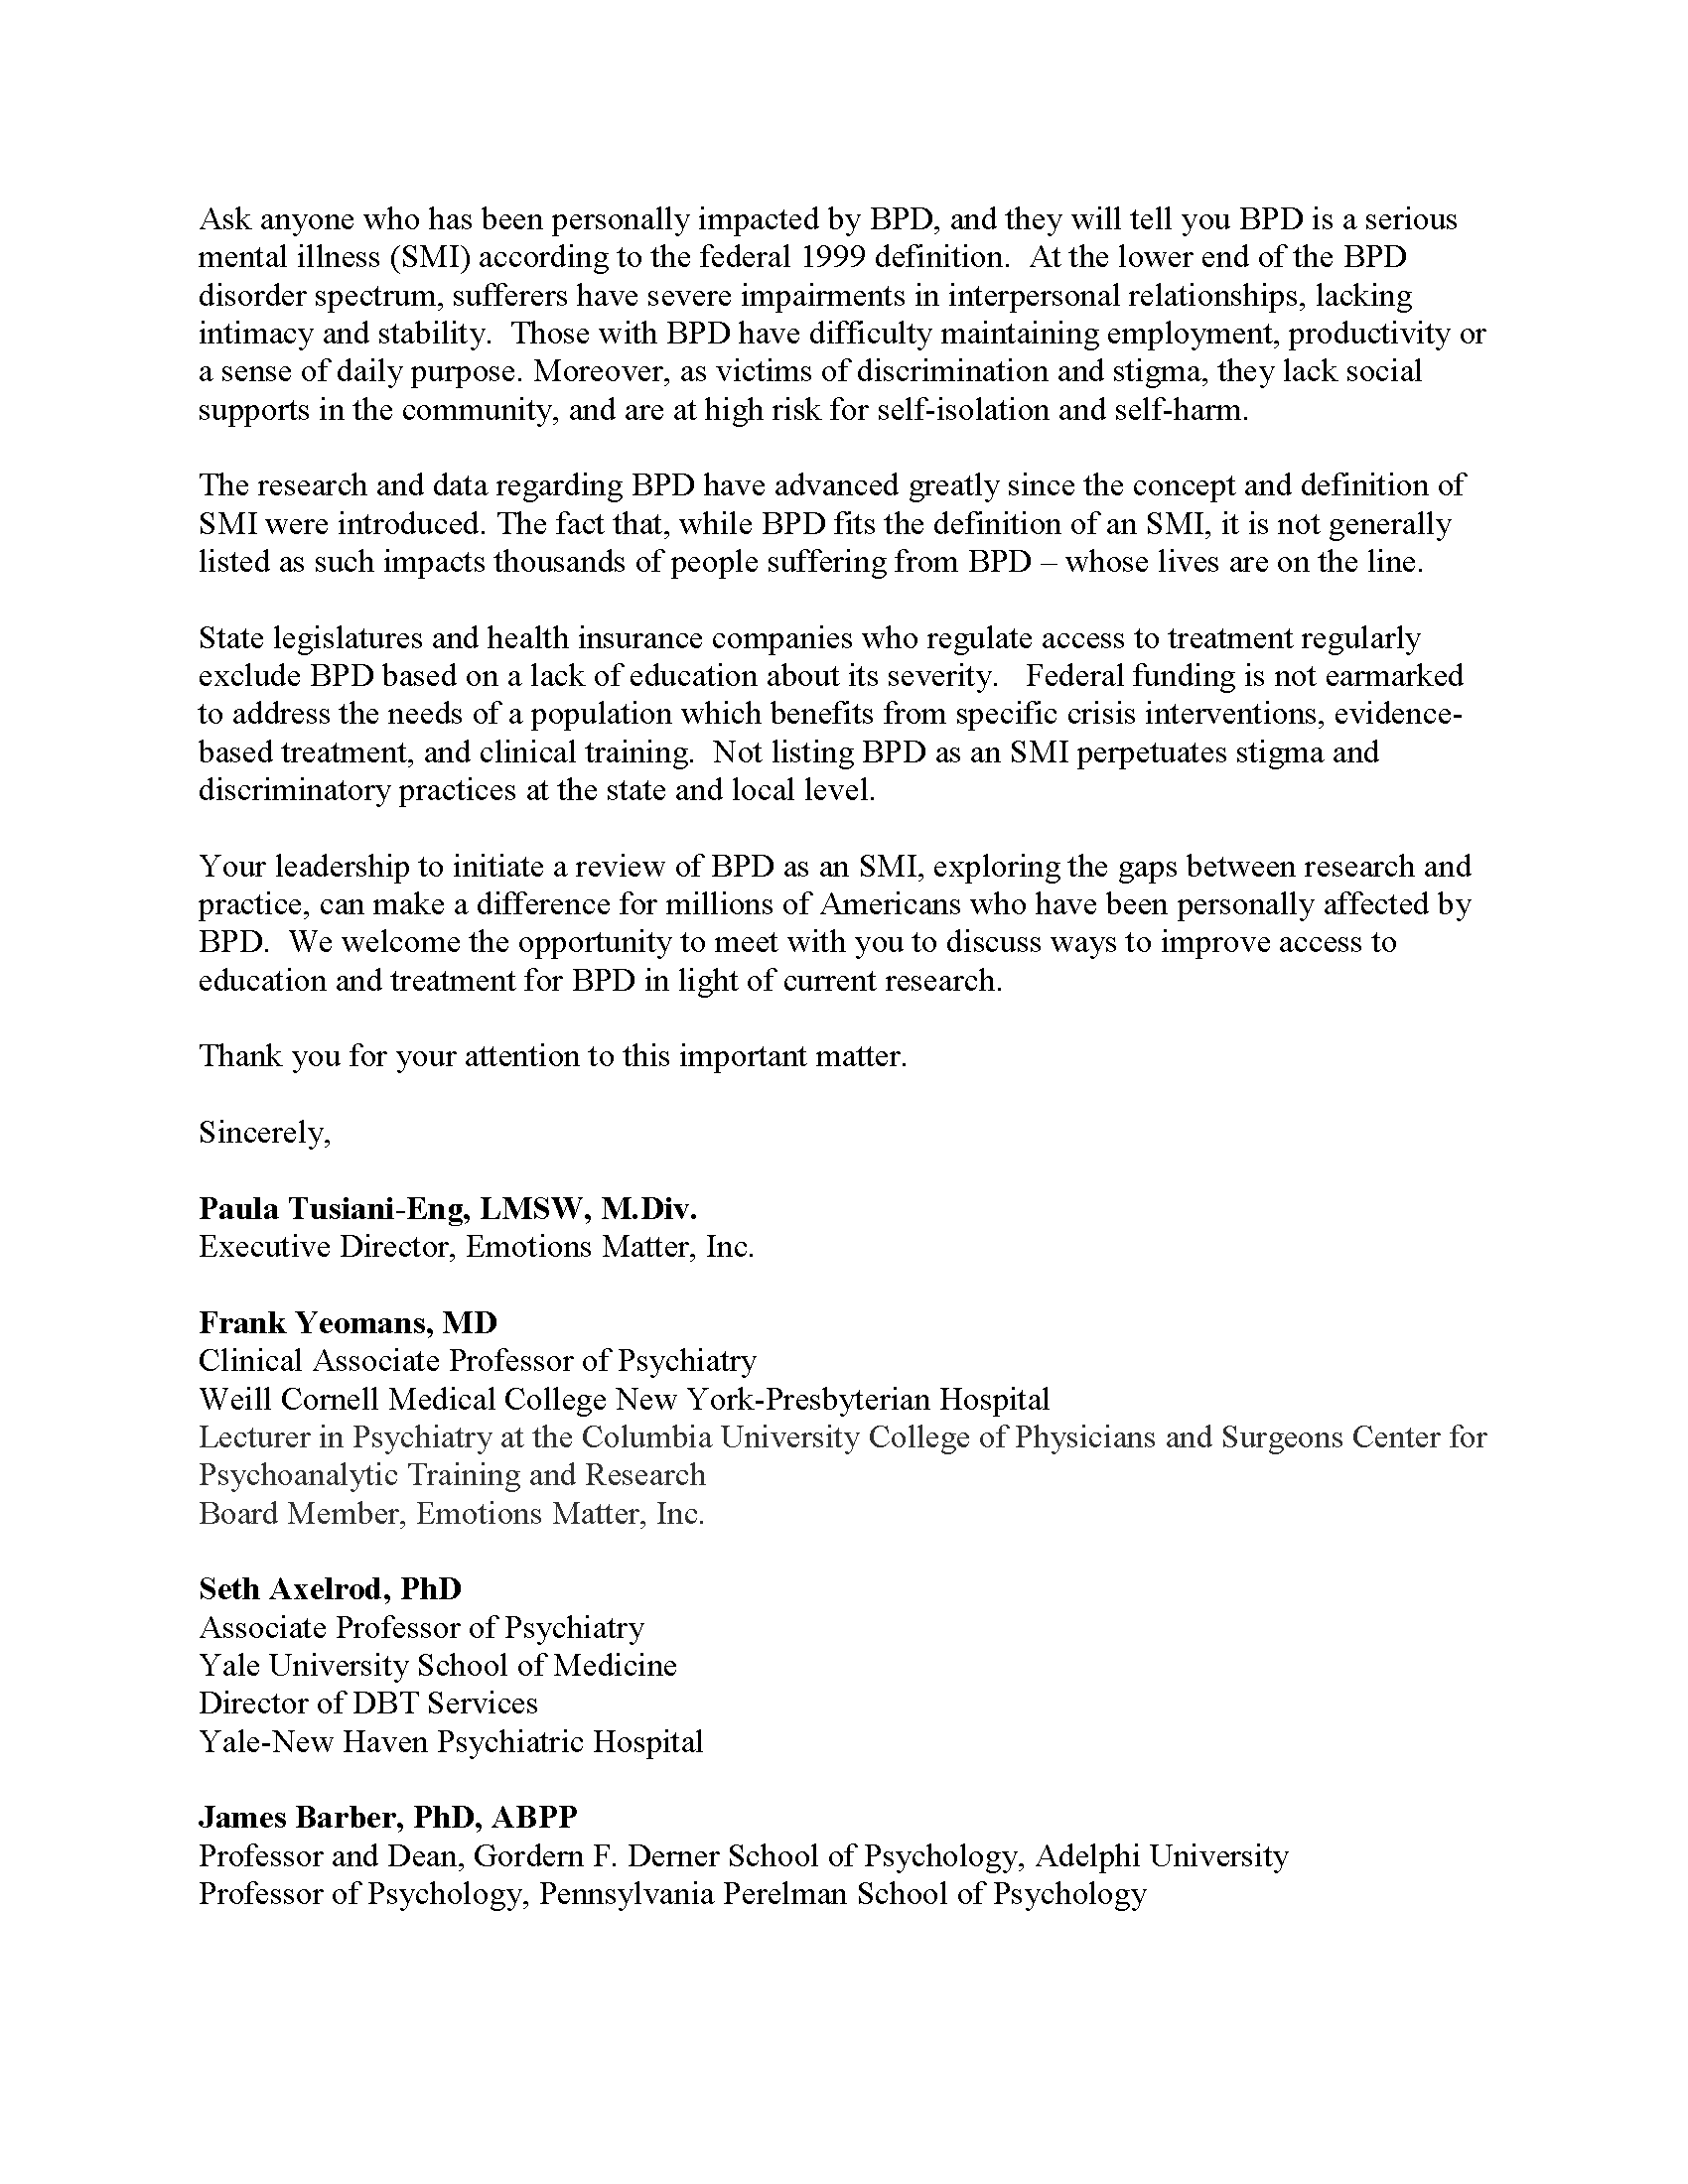 SAMHSA BPD SMI letter with signatures 7.8.19_Page_2.png